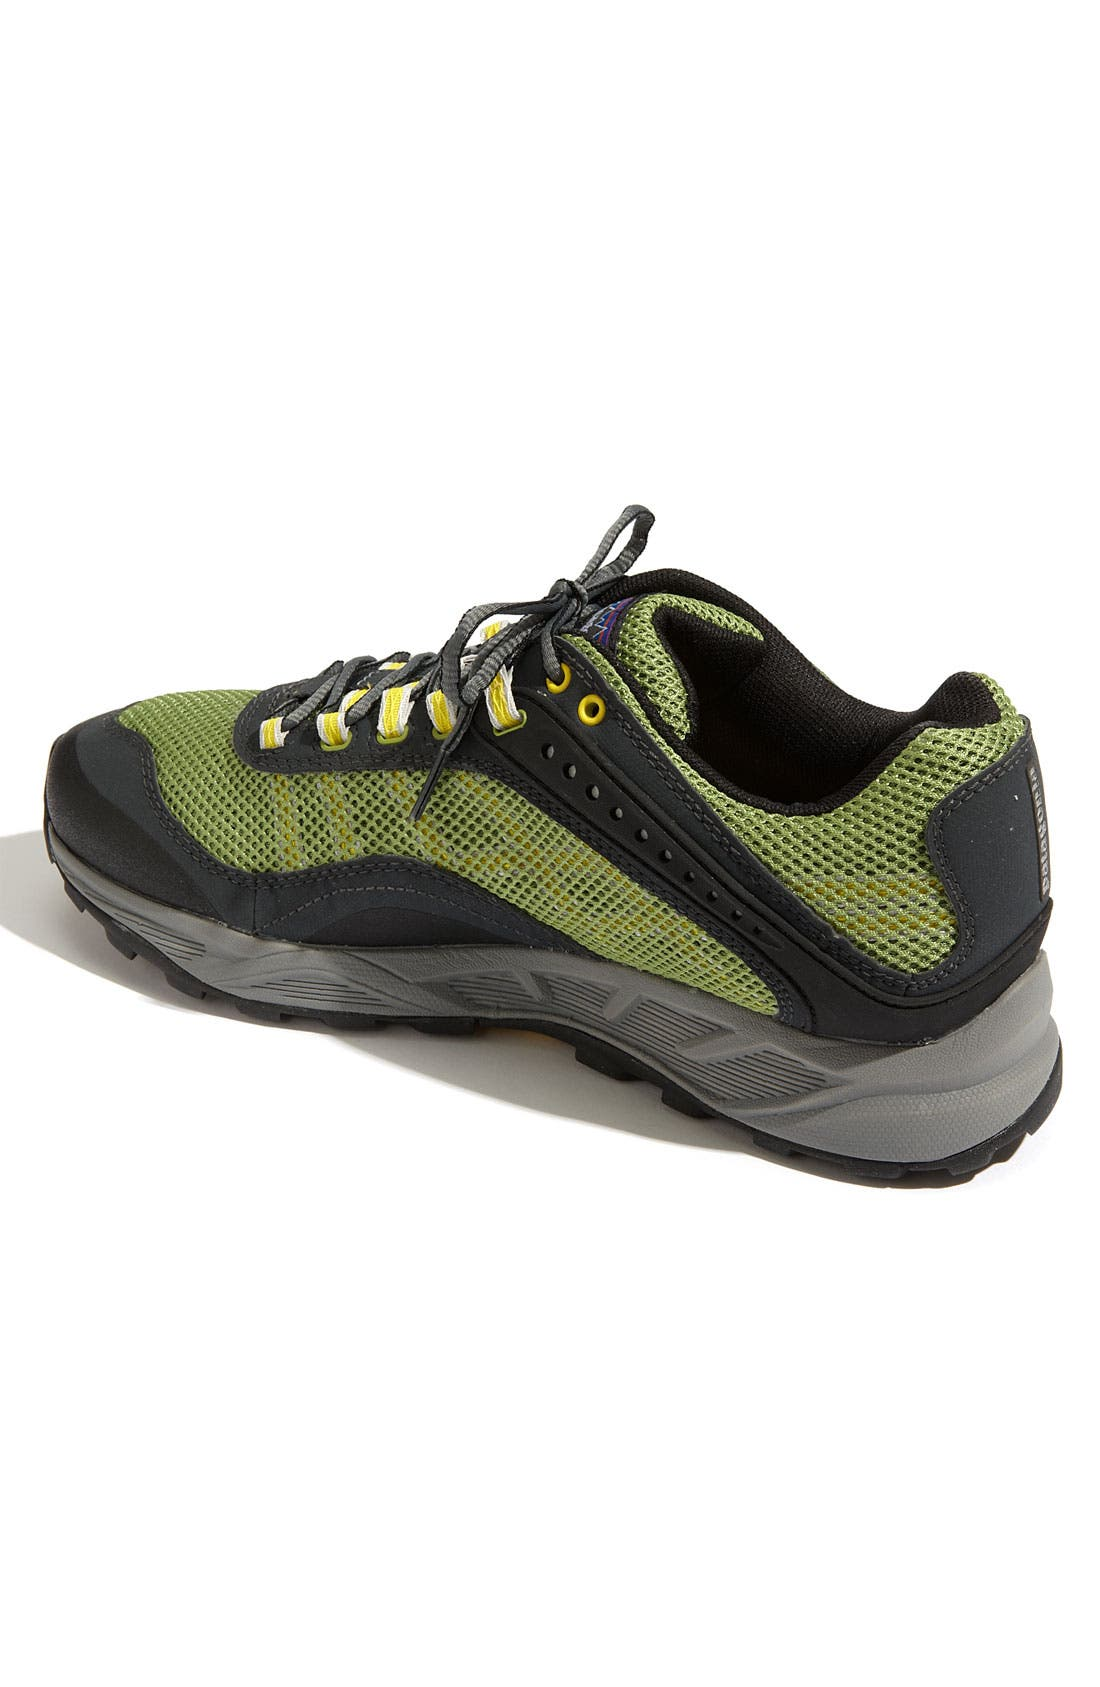 Alternate Image 3  - Patagonia 'Specter' Trail Running Shoe (Men)